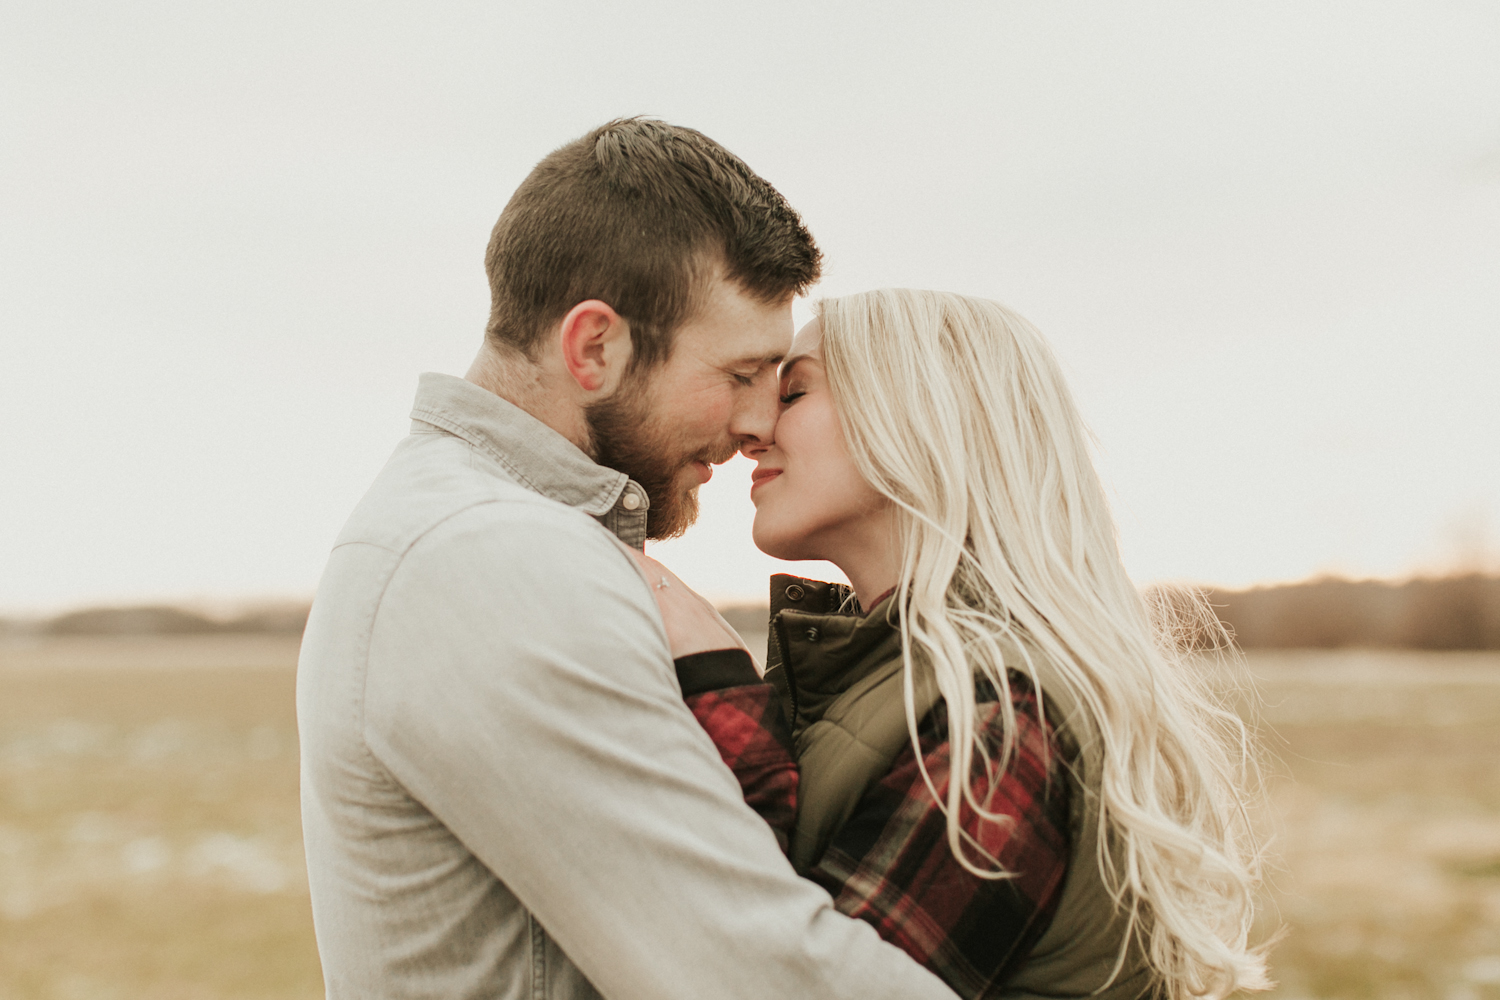 Romantic image of a couple during their outdoor engagement session